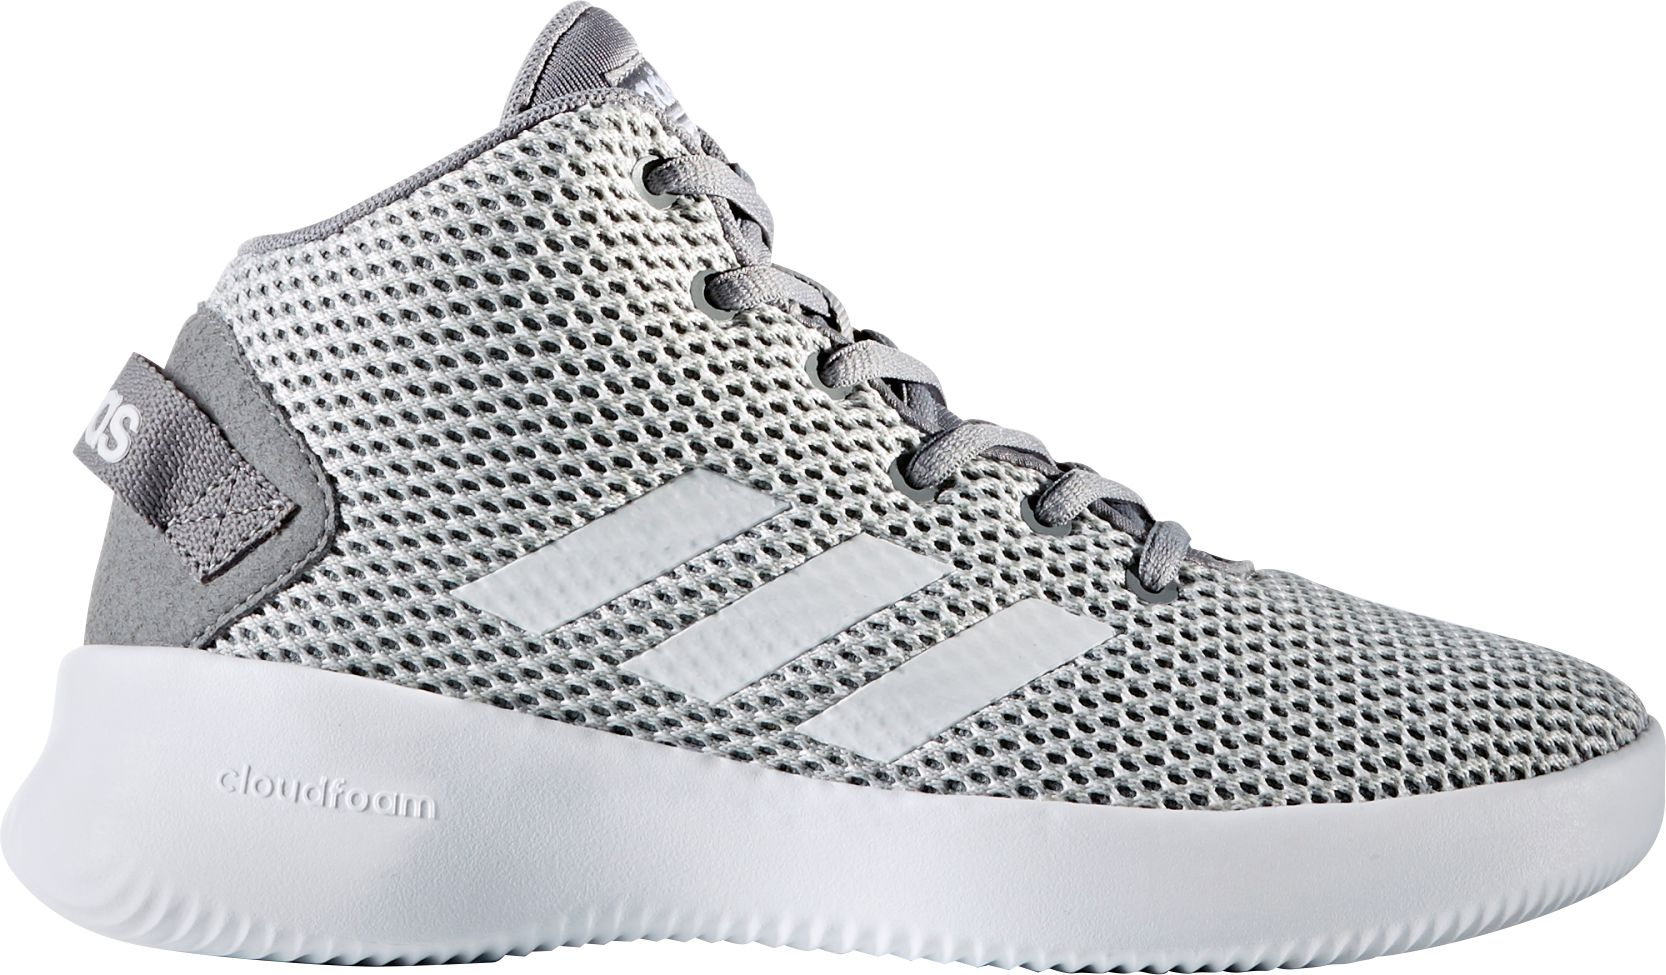 adidas Neo Kids' Grade School Cloudfoam Refresh Mid Shoes | DICK'S Sporting  Goods